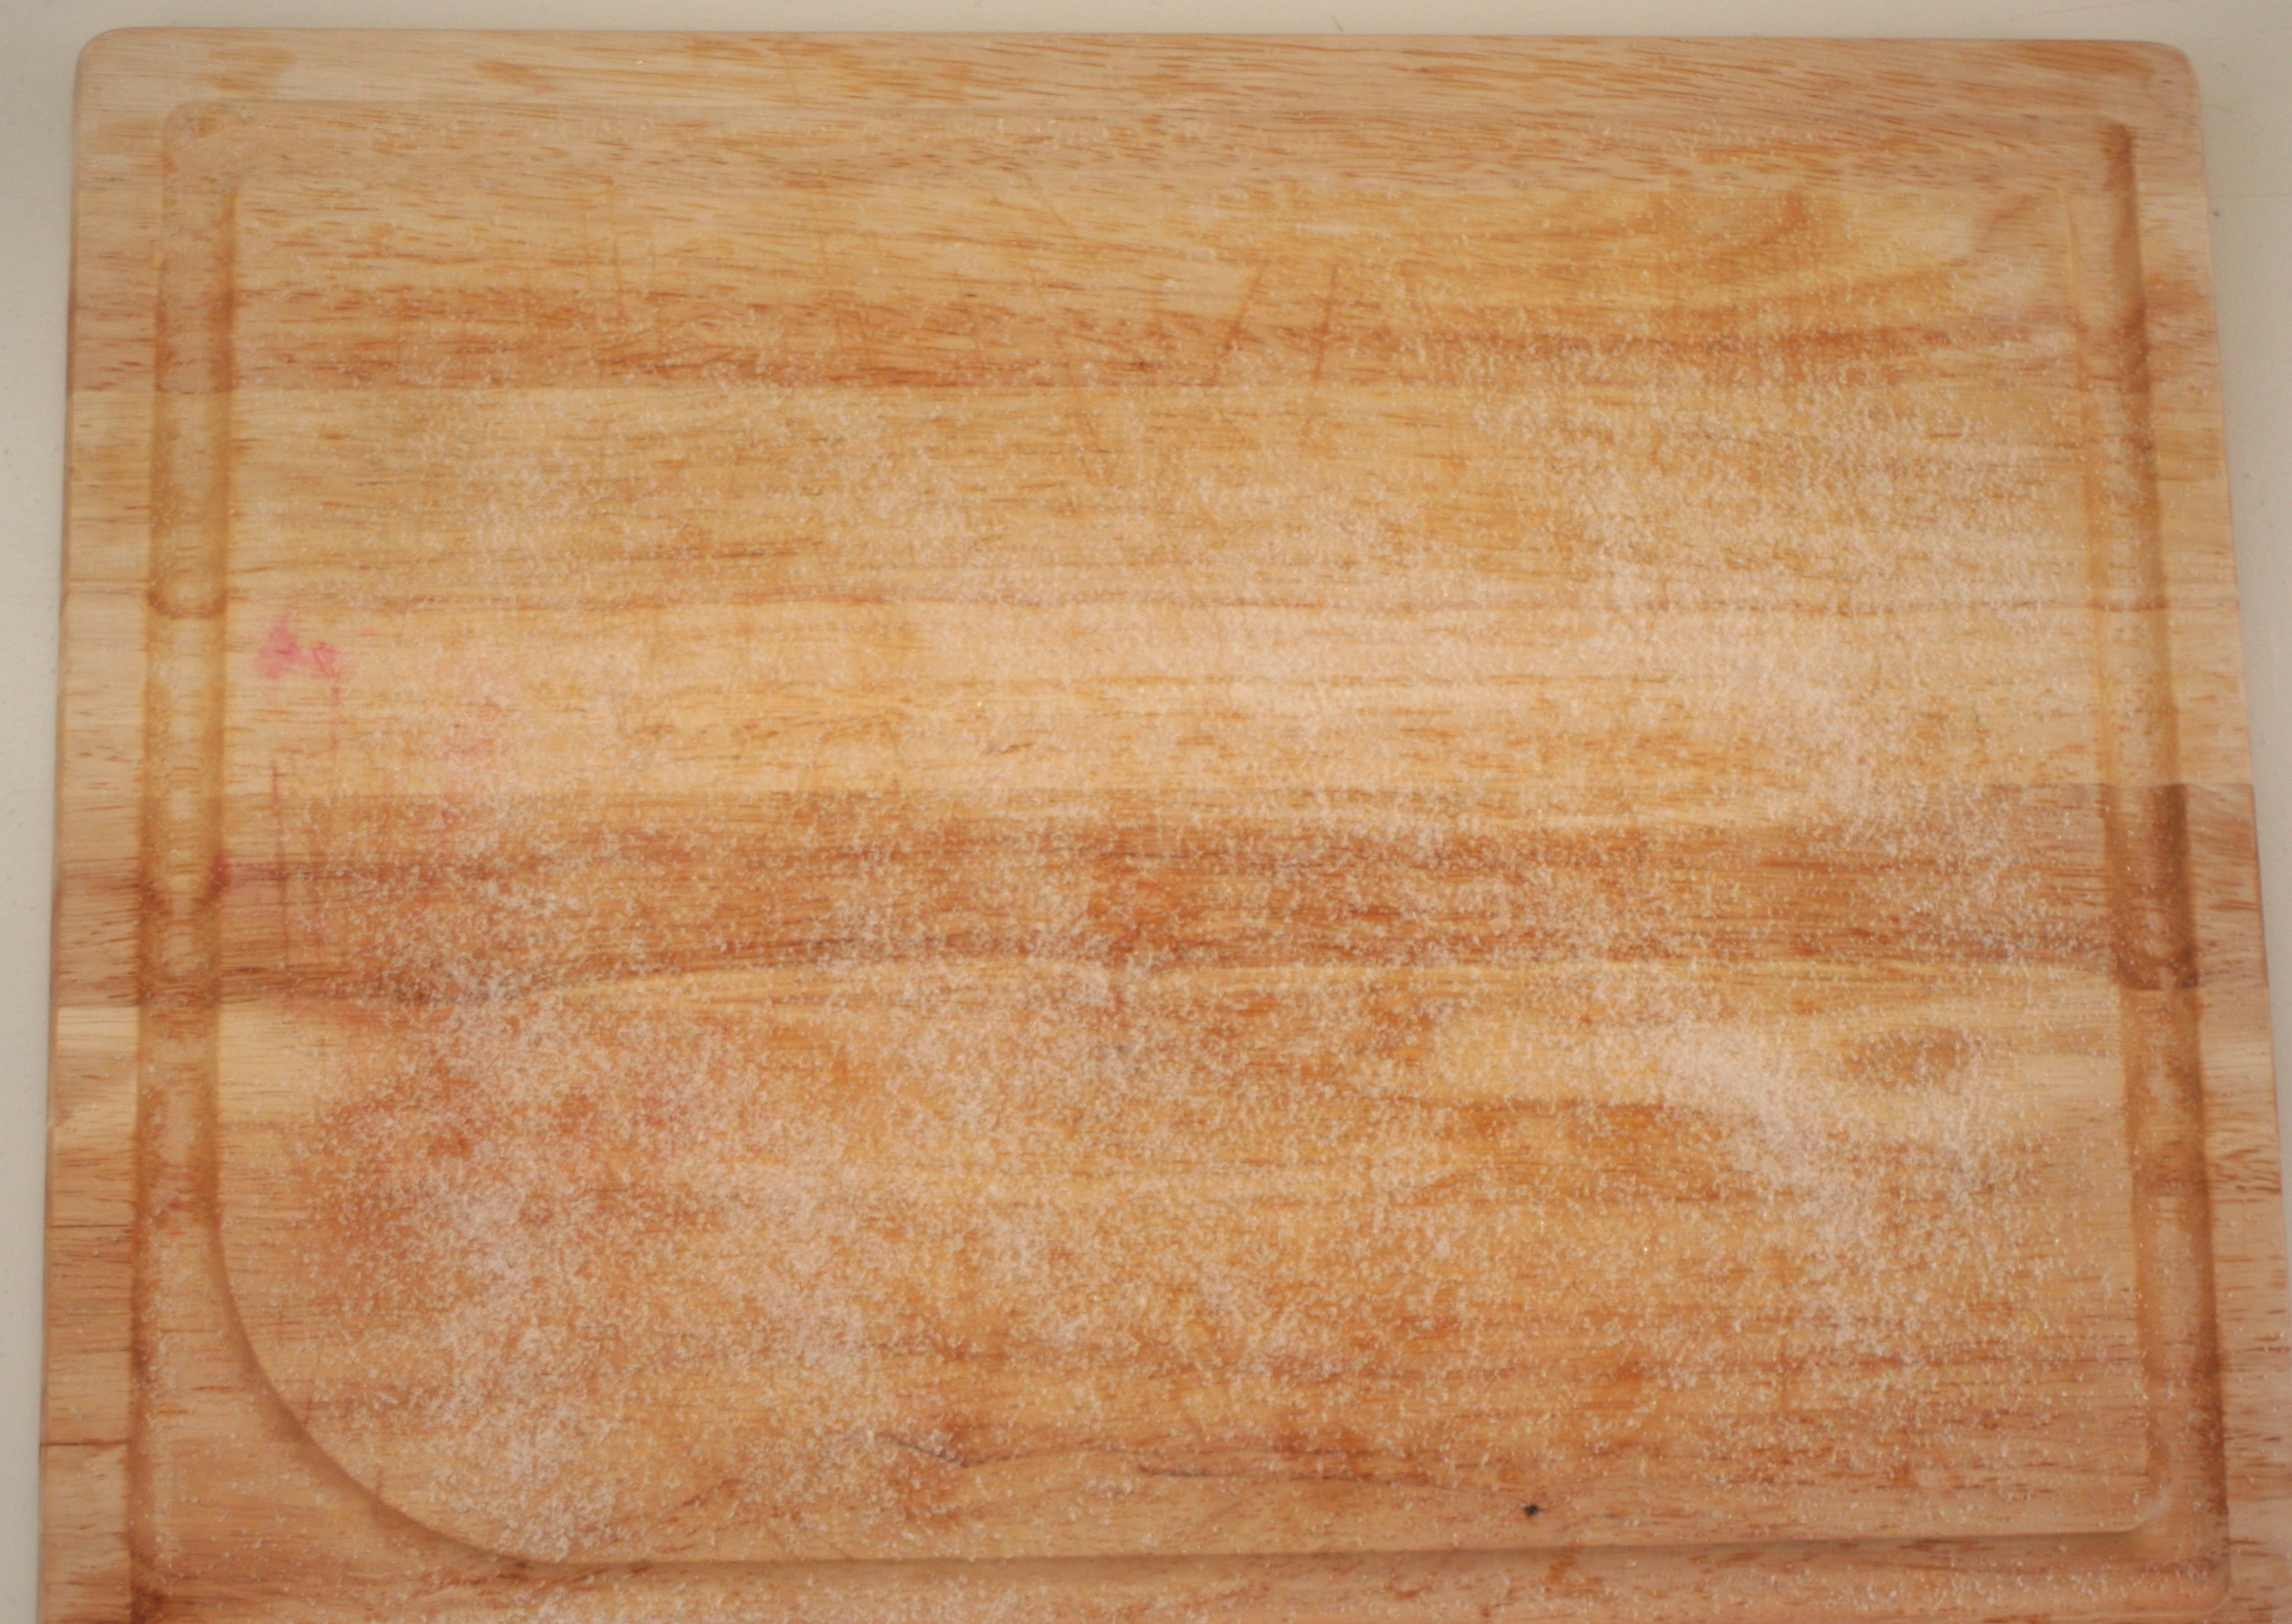 how to clean a sticky wooden cutting board